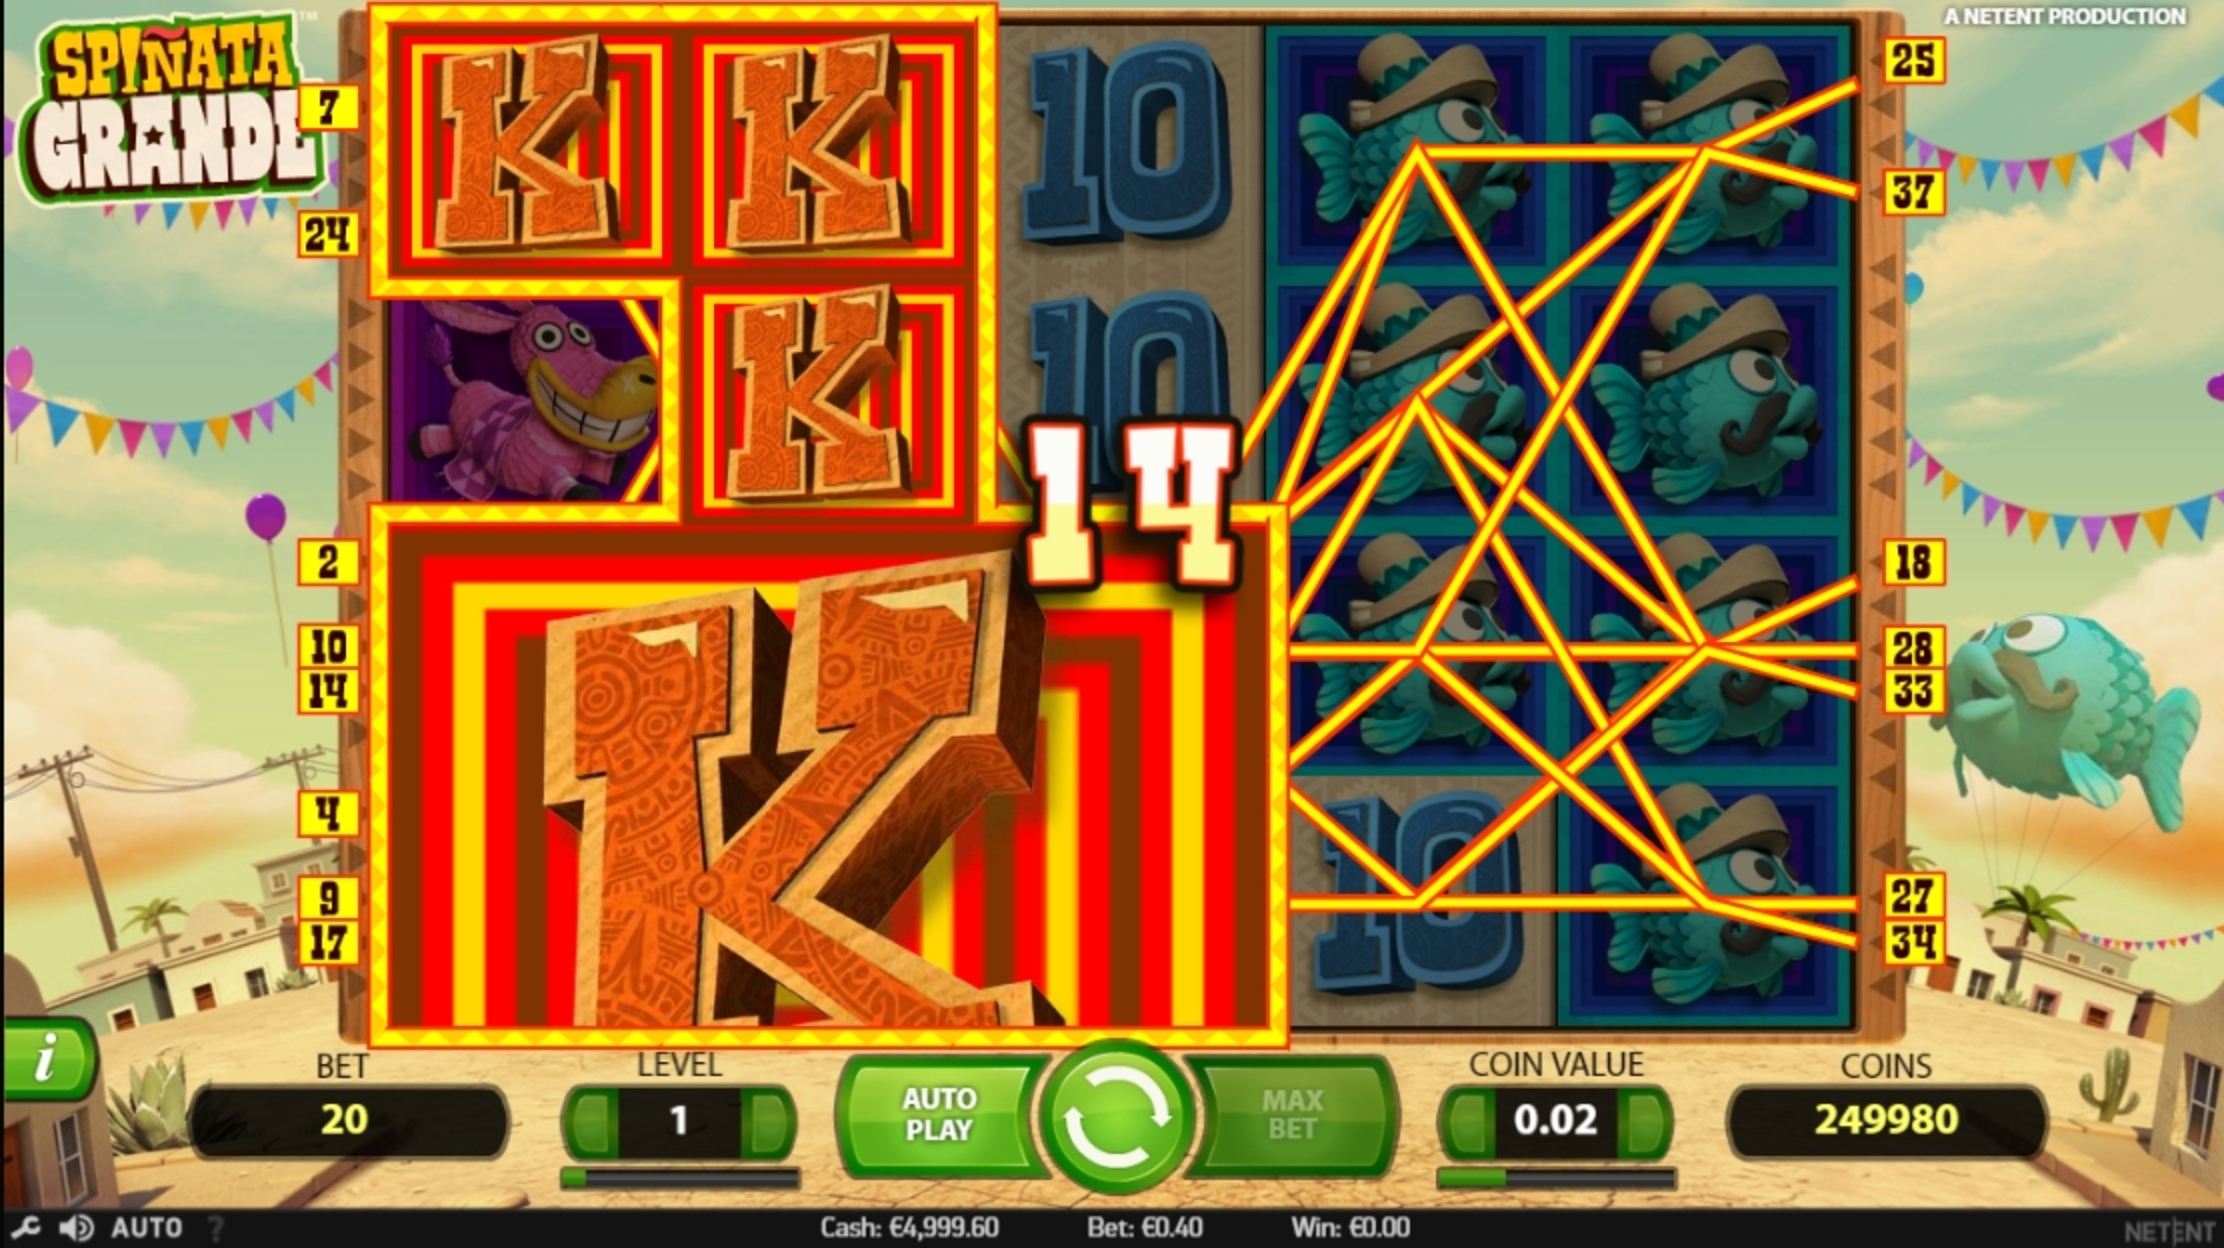 Win Money in Spinata Grande Free Slot Game by NetEnt